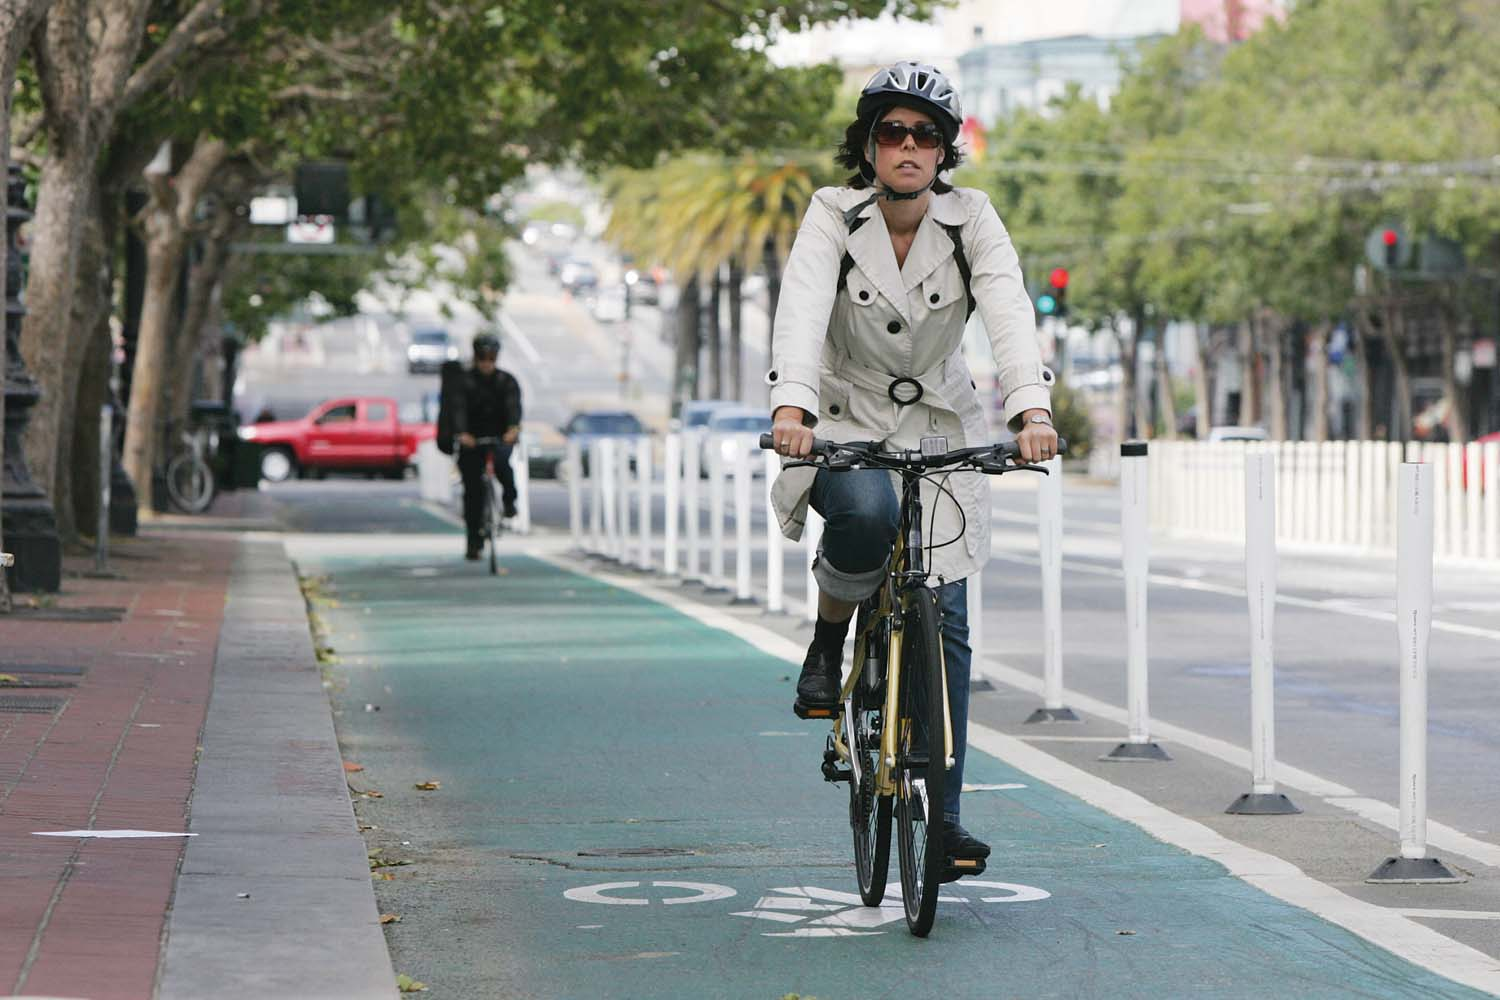 San Francisco and its cycletracks lead the way toward safer biking statewide